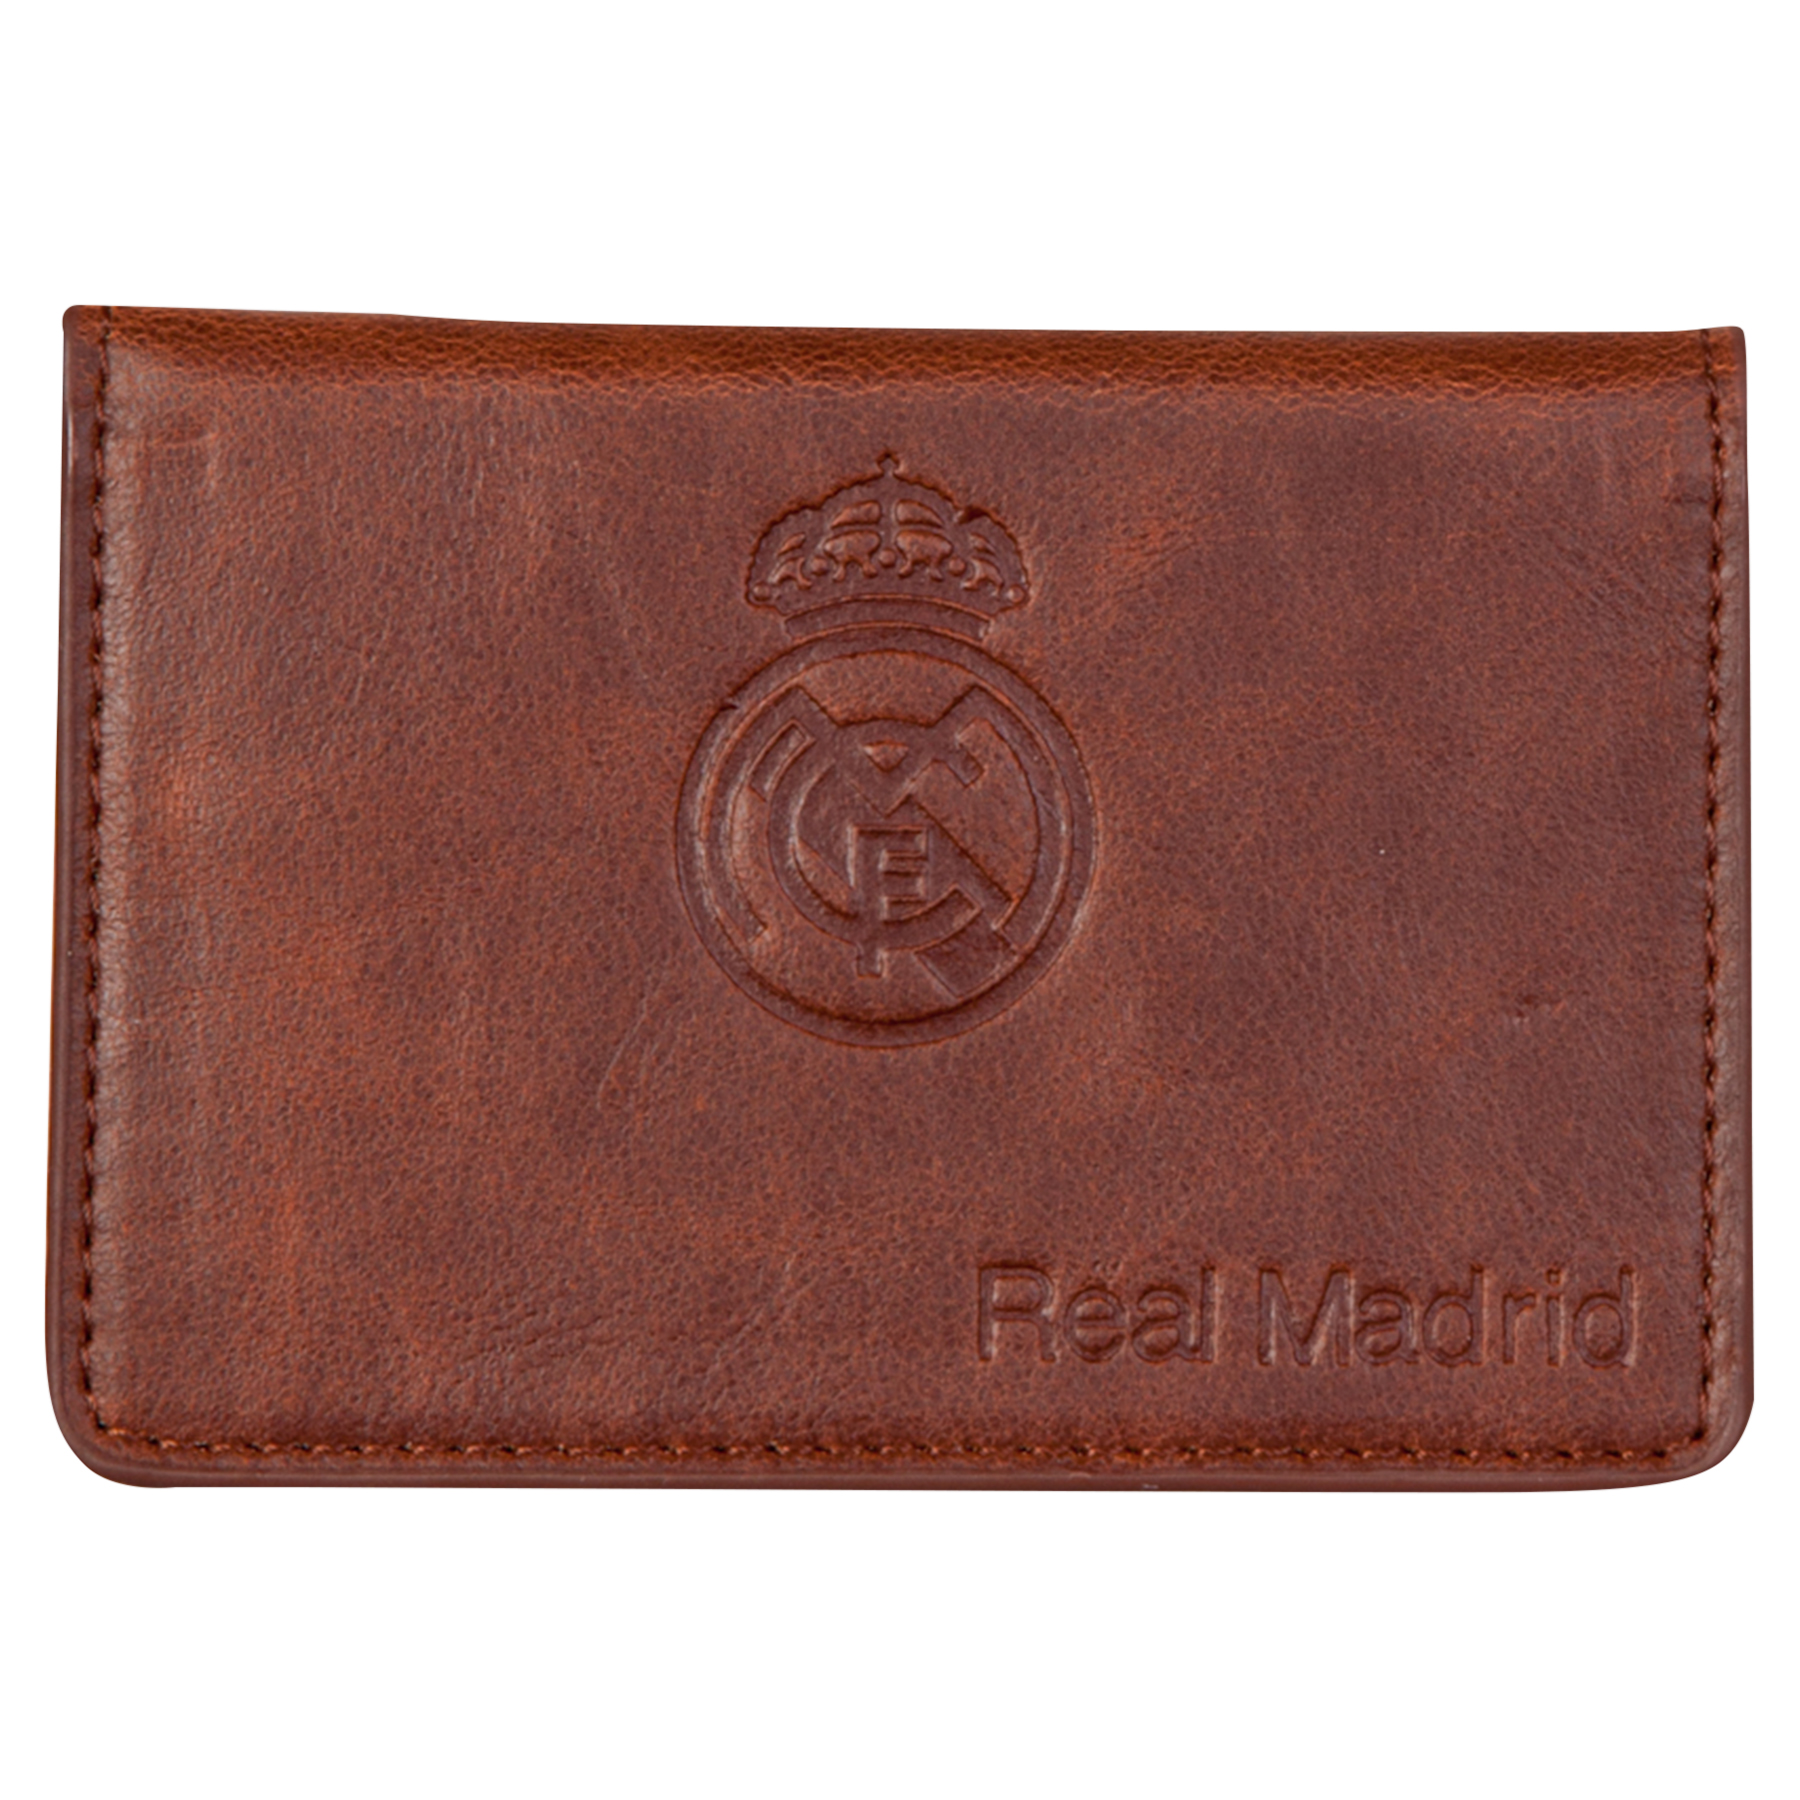 Real Madrid Stadium Card Wallet - Brown